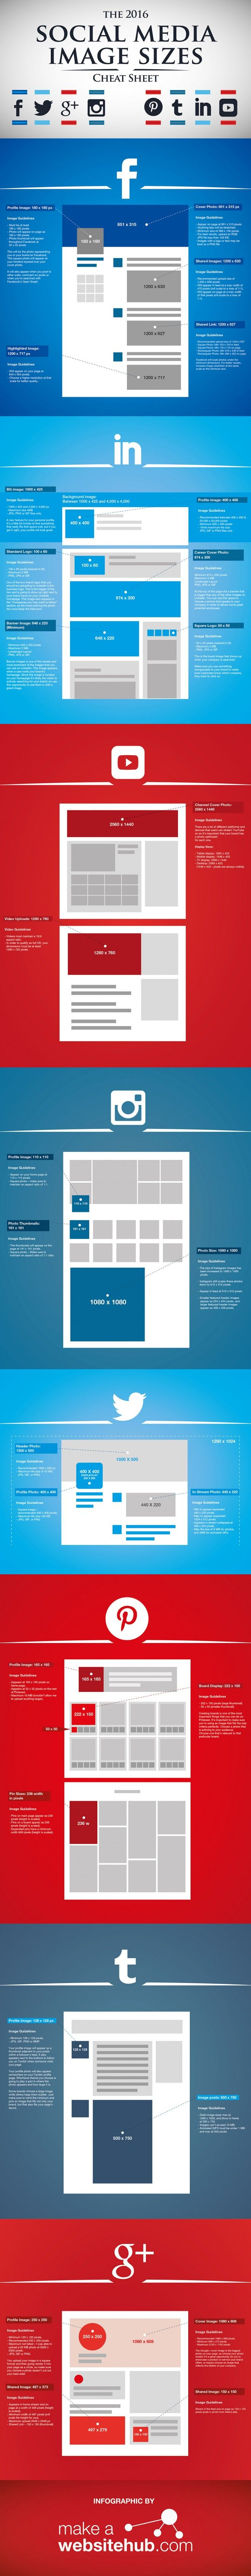 The Ultimate Guide to the Best Social Media Image Sizes - @rebekahradice